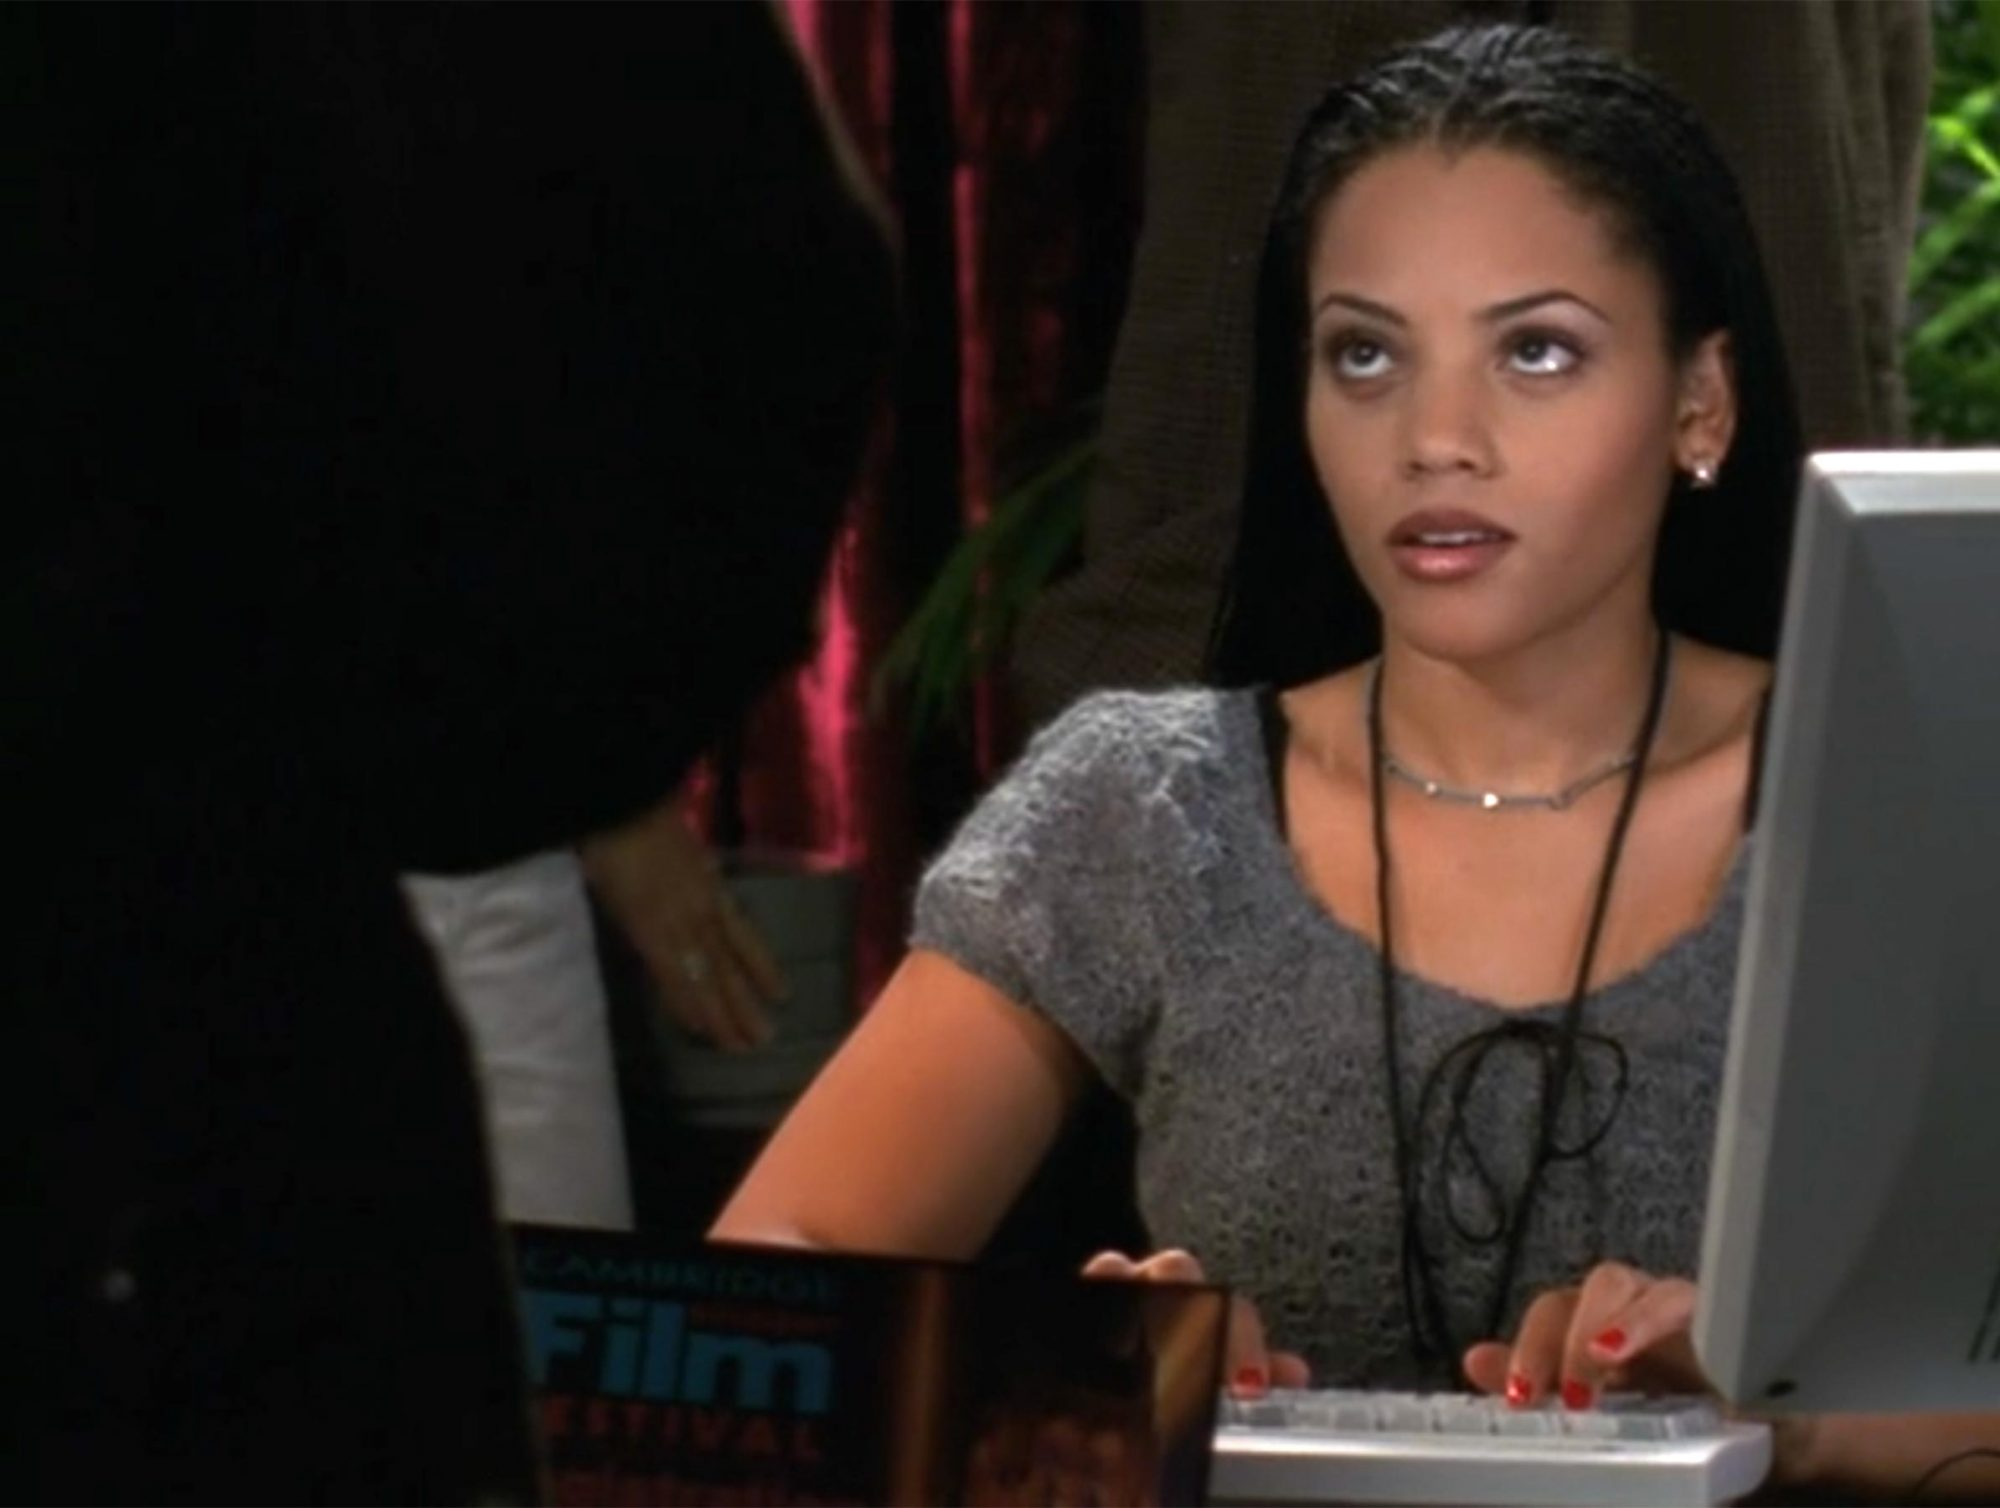 Bianca Lawson: Nikki Green, Season 3